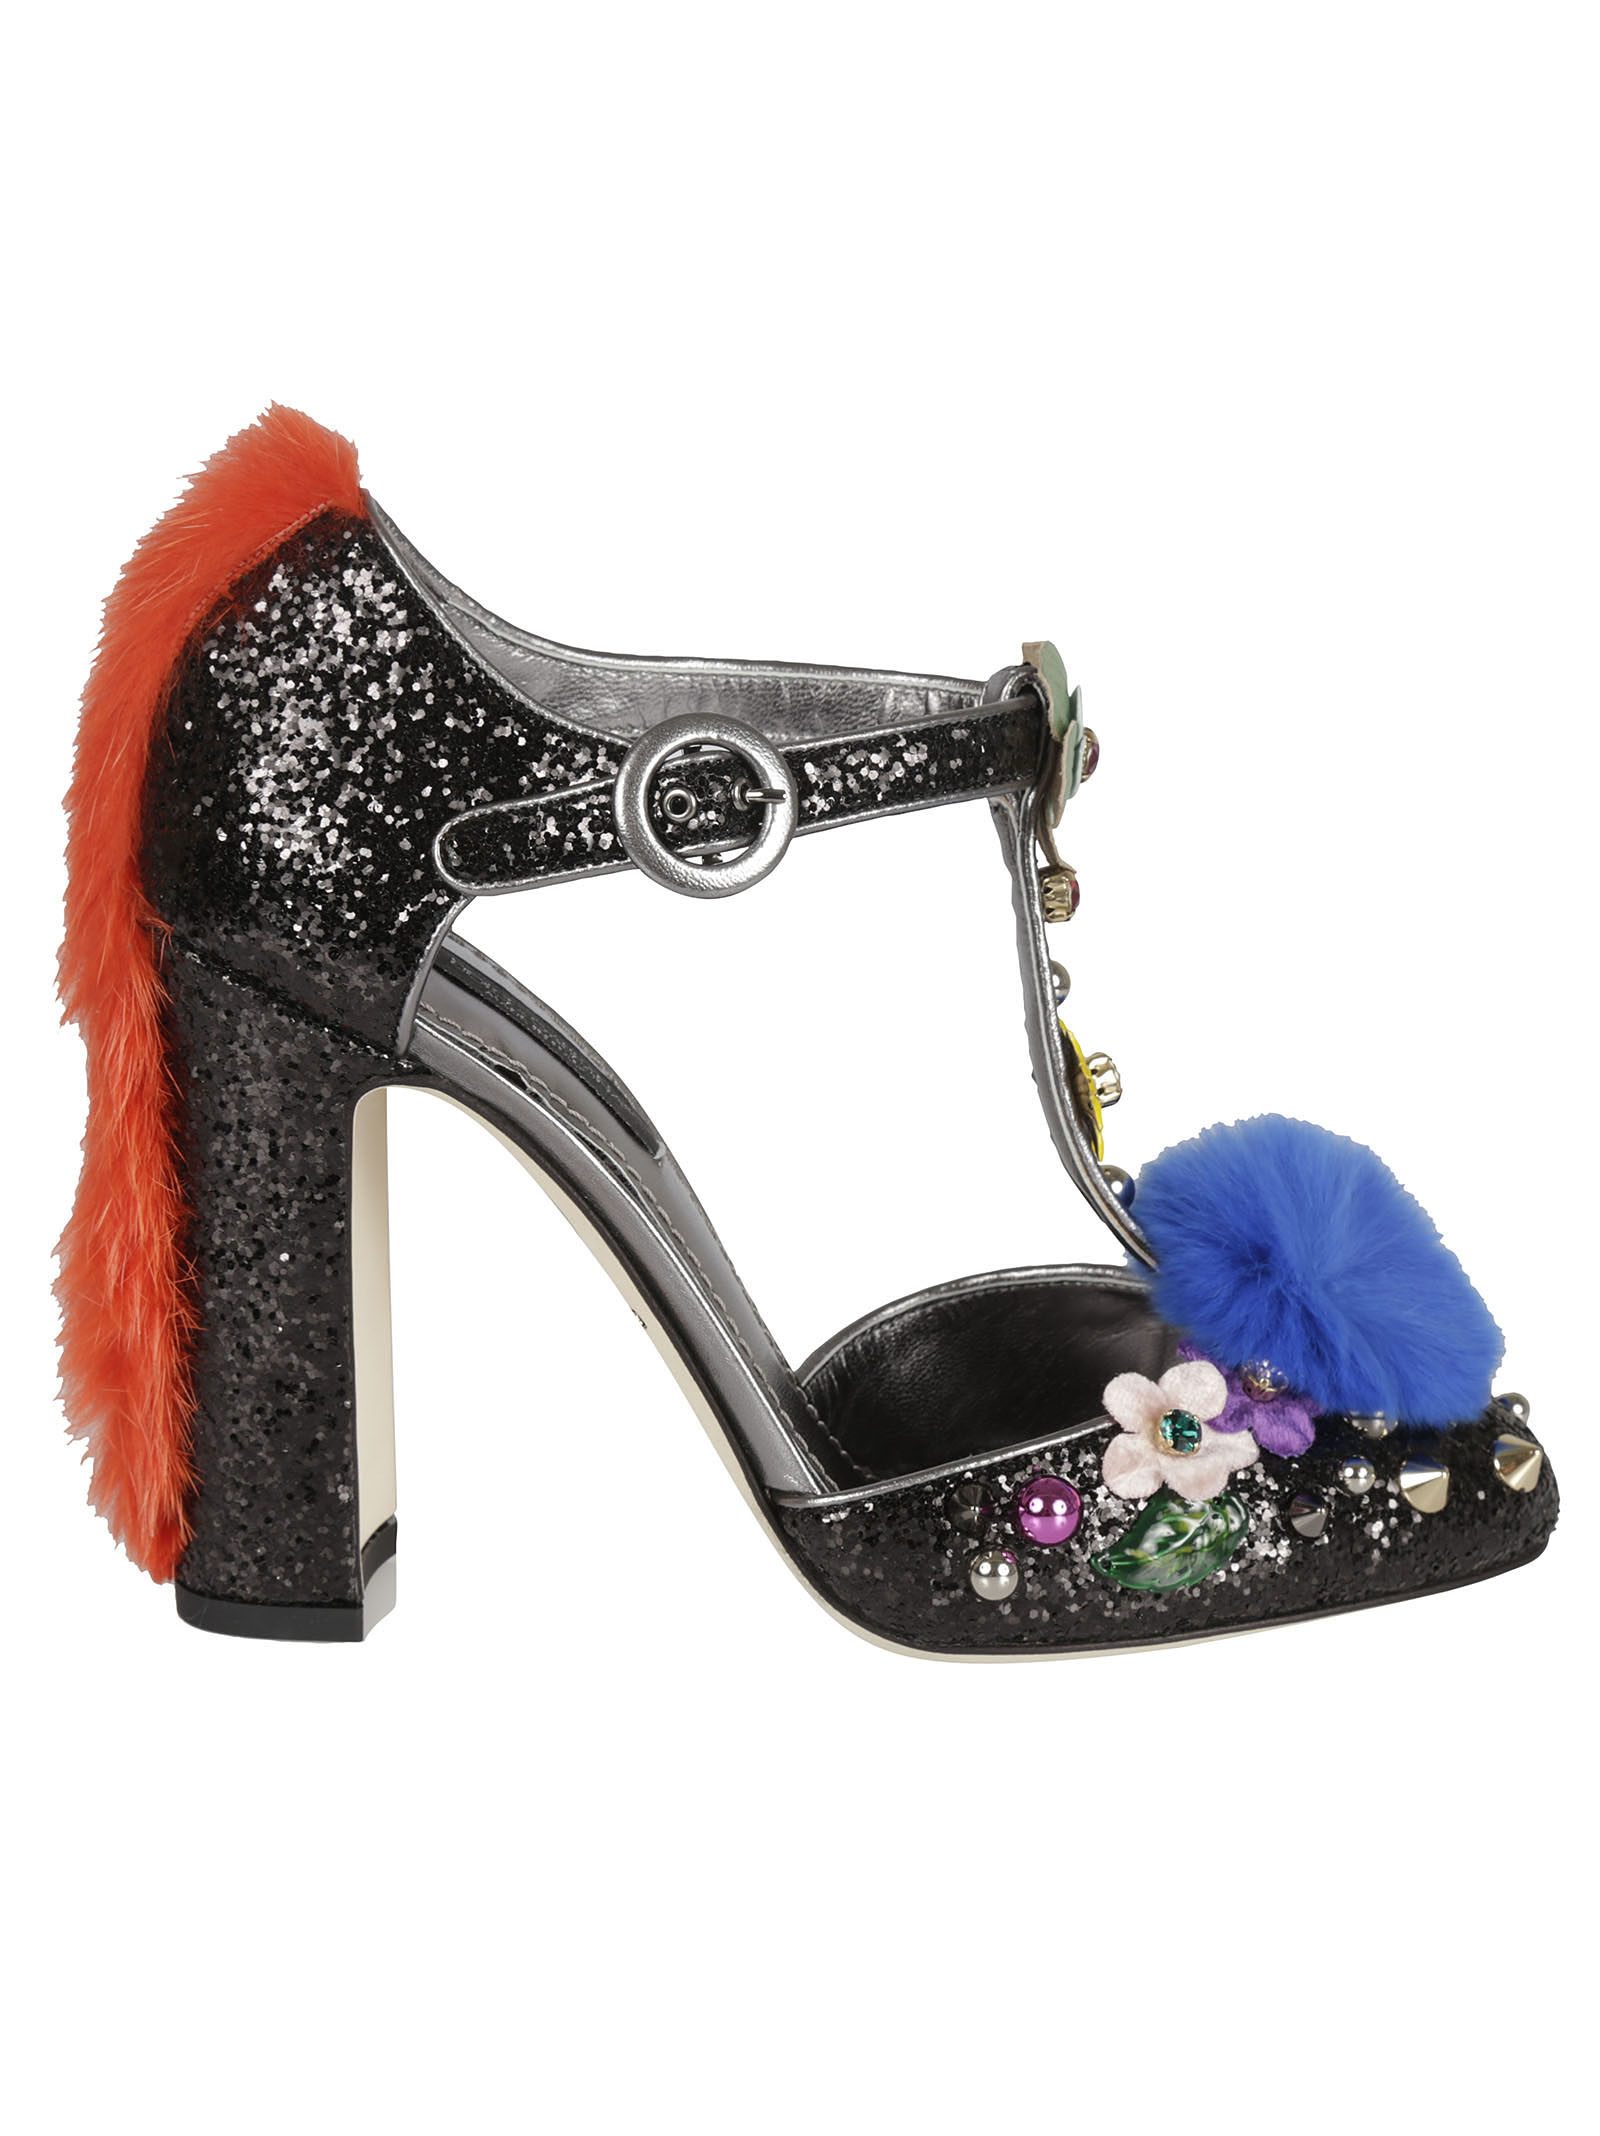 Dolce & Gabbana Glitter Mary Jane Pumps - Dolce & Gabbana - Hair